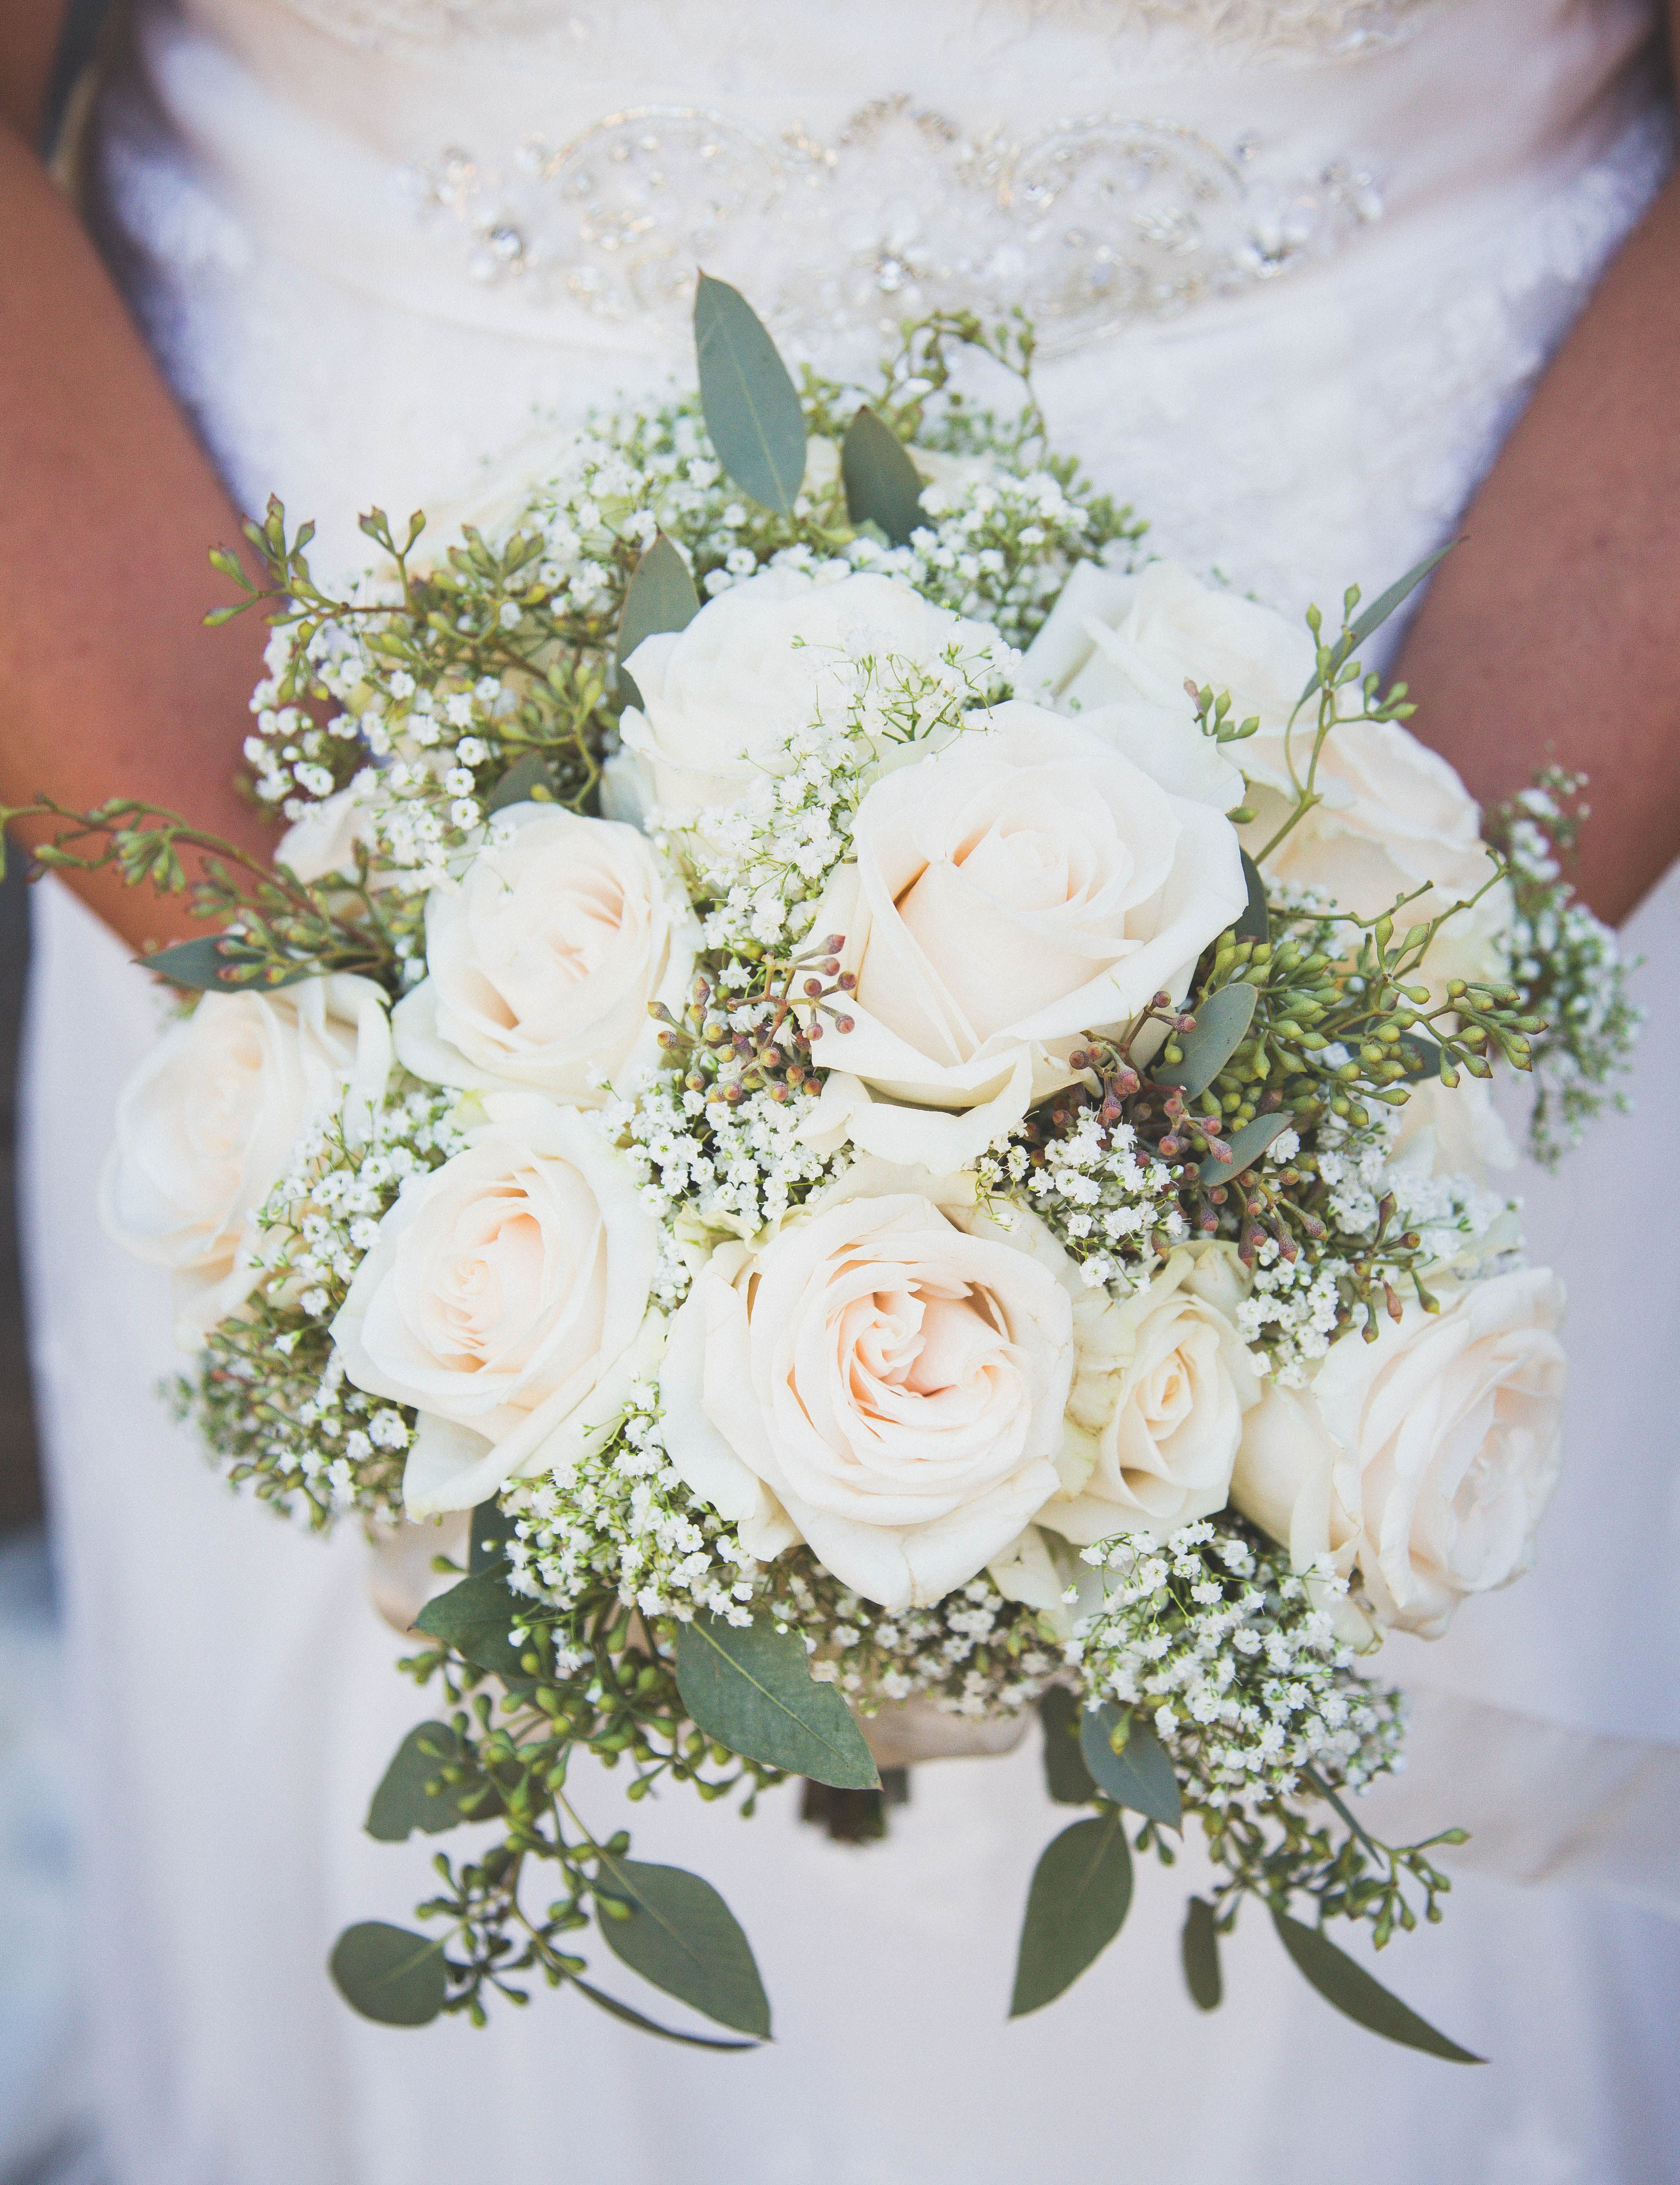 White Roses And Assorted Greenery From Sam S Club Wedding Flowers Sams Club Wedding Flowers Wedding Boquet